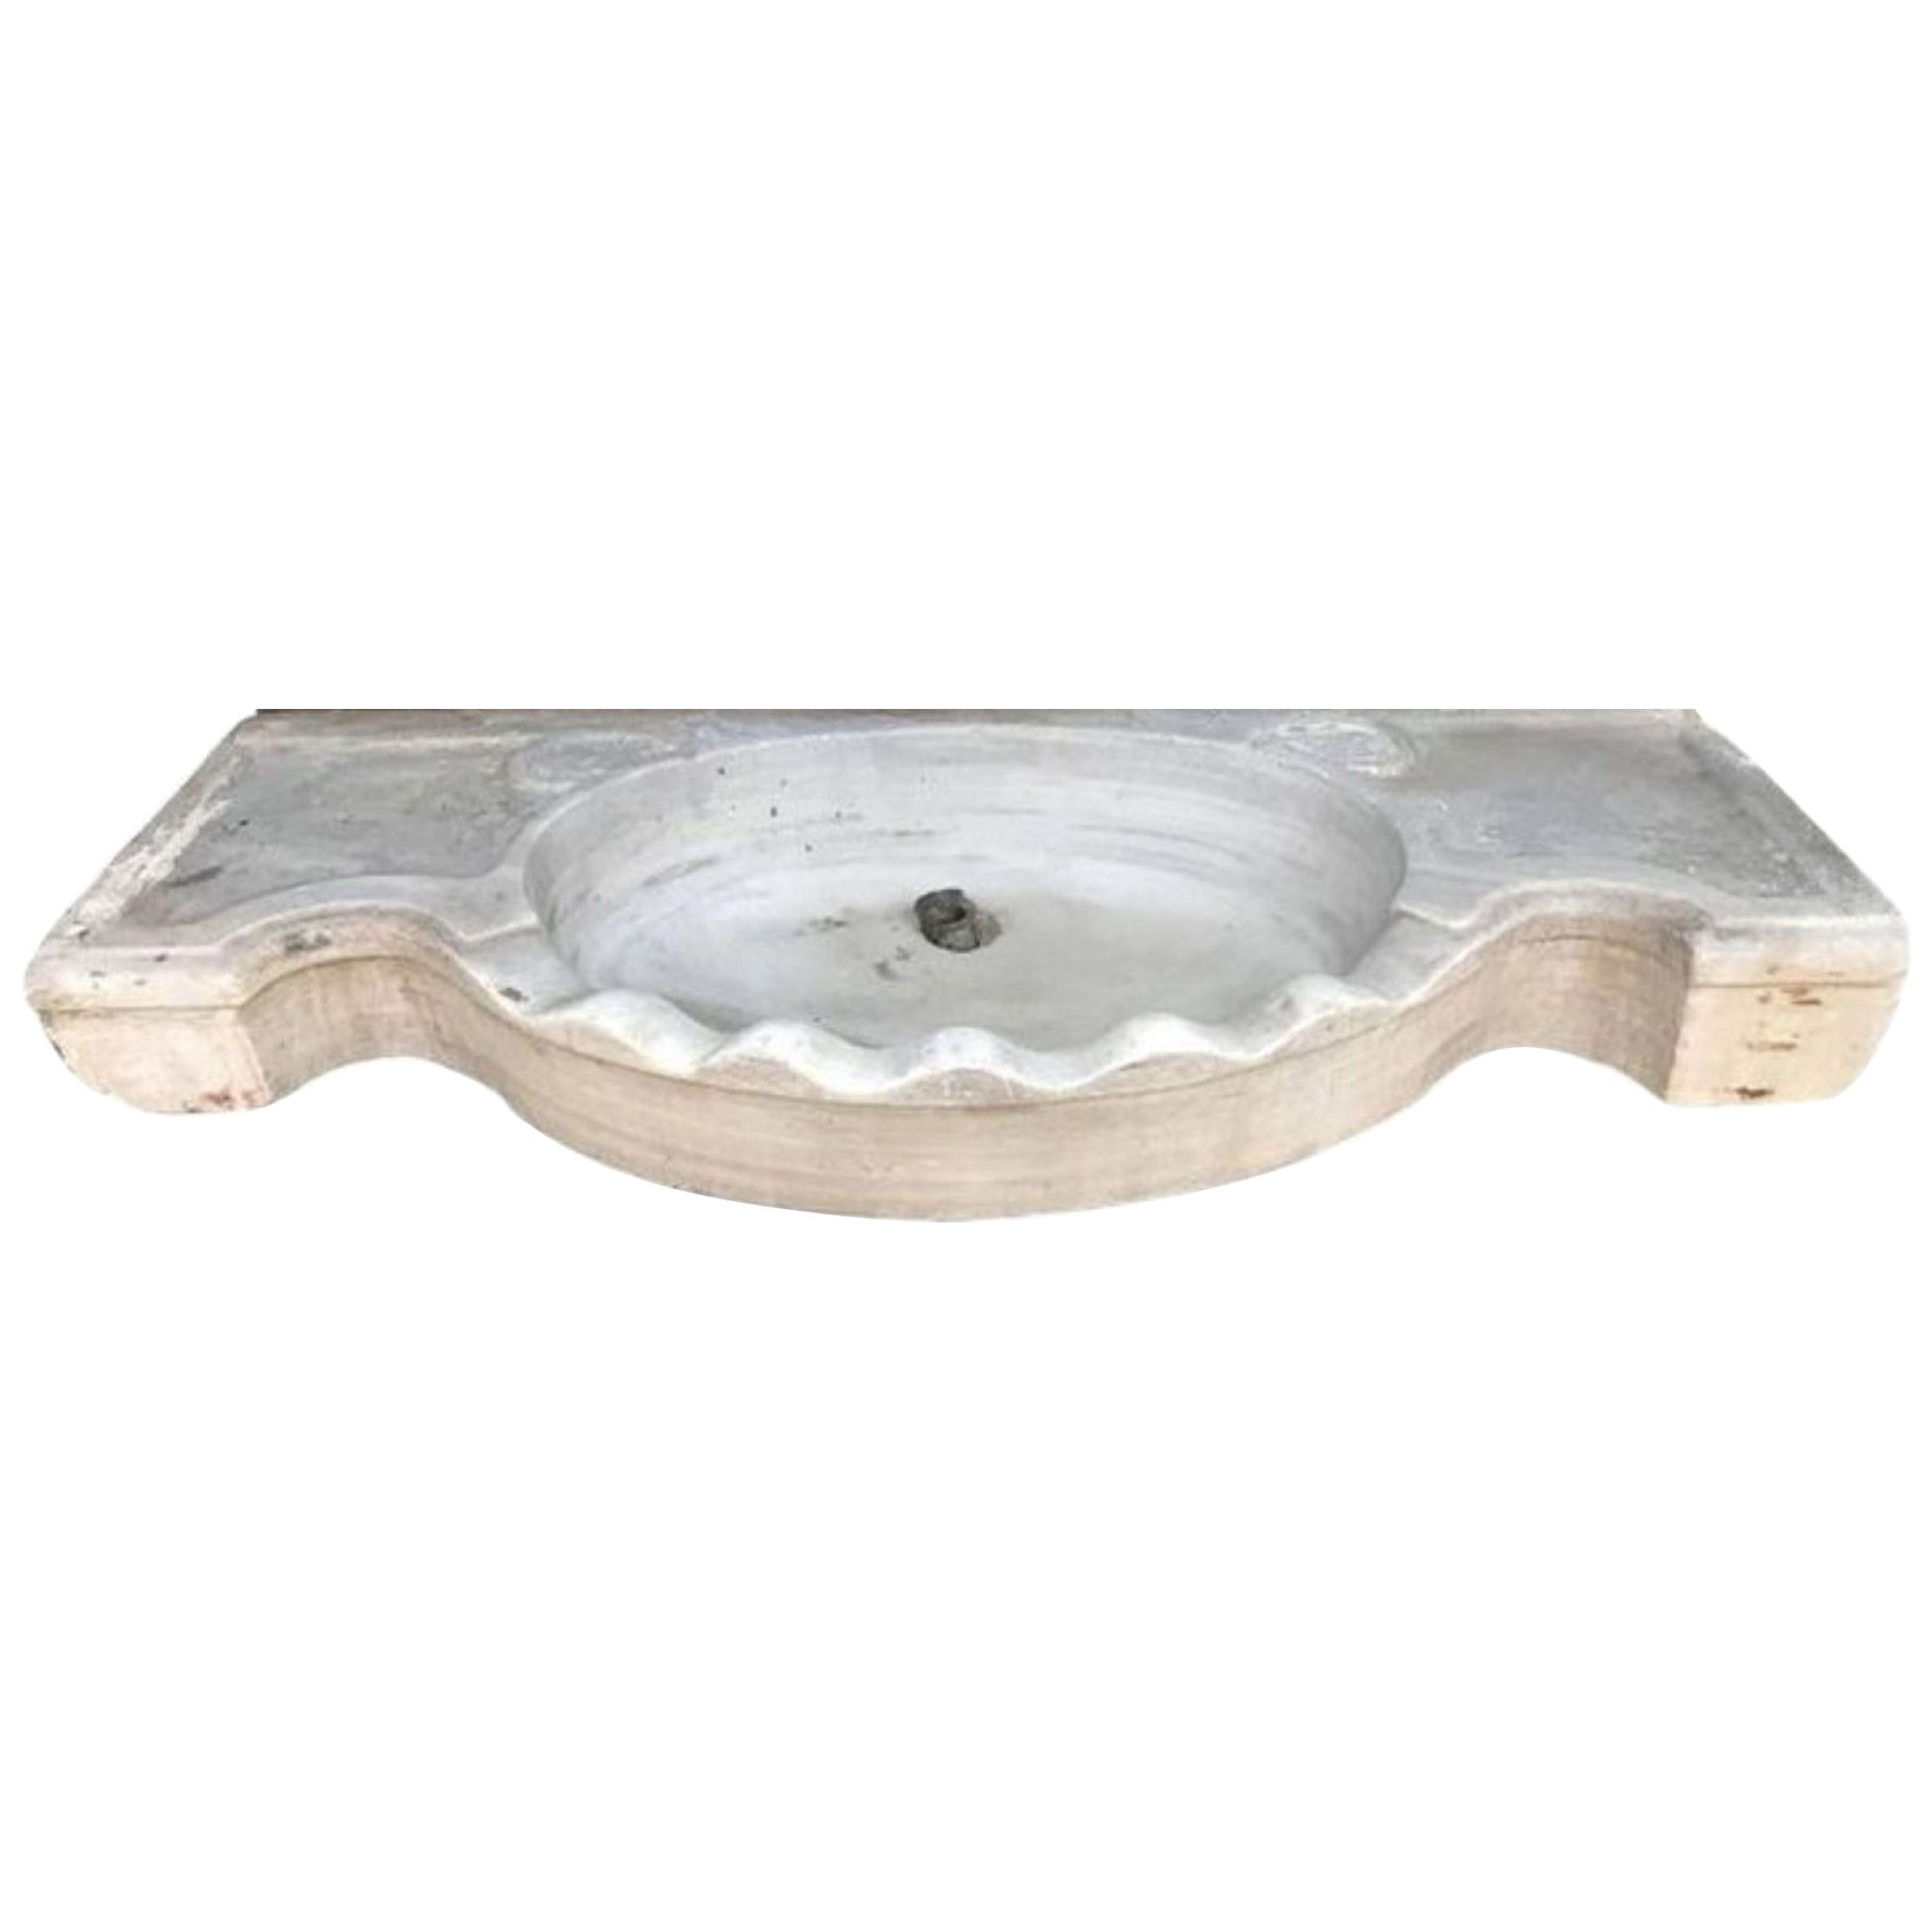 Classical Serpentine Marble Stone Sink Basin